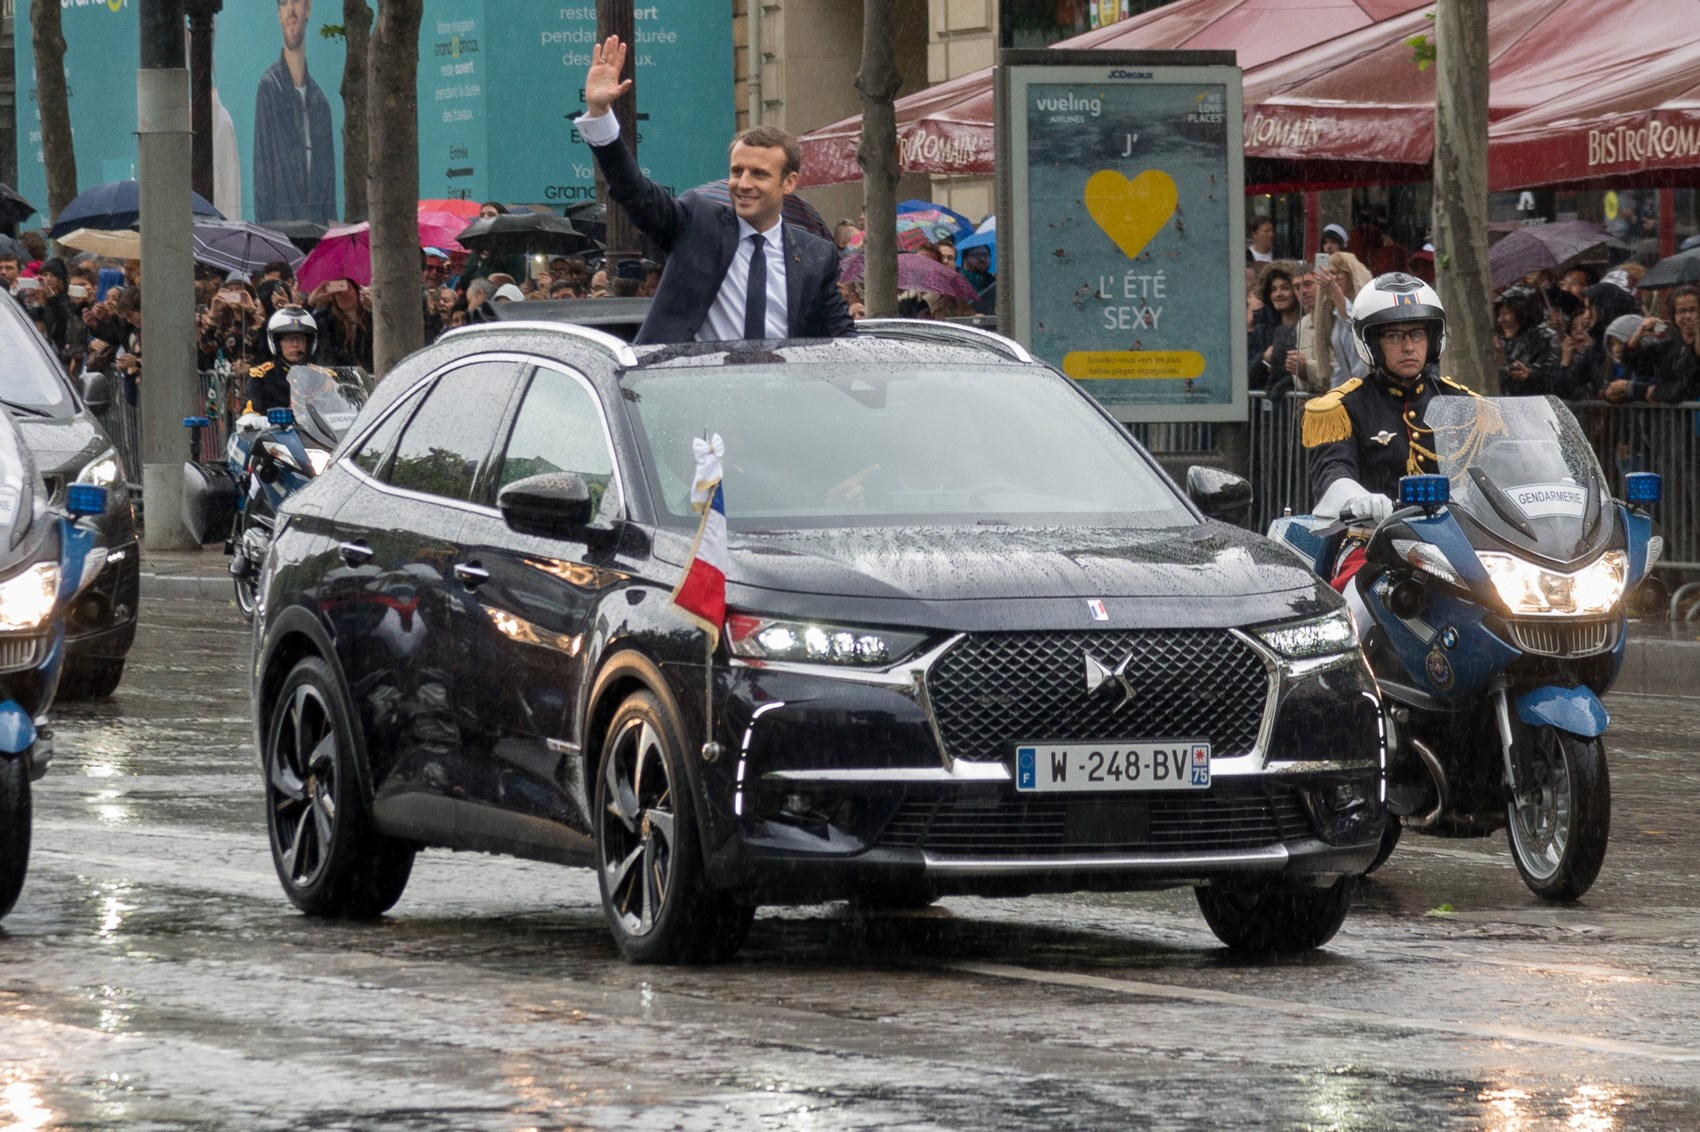 ds7 crossback suv new french president macron has first dibs car magazine. Black Bedroom Furniture Sets. Home Design Ideas